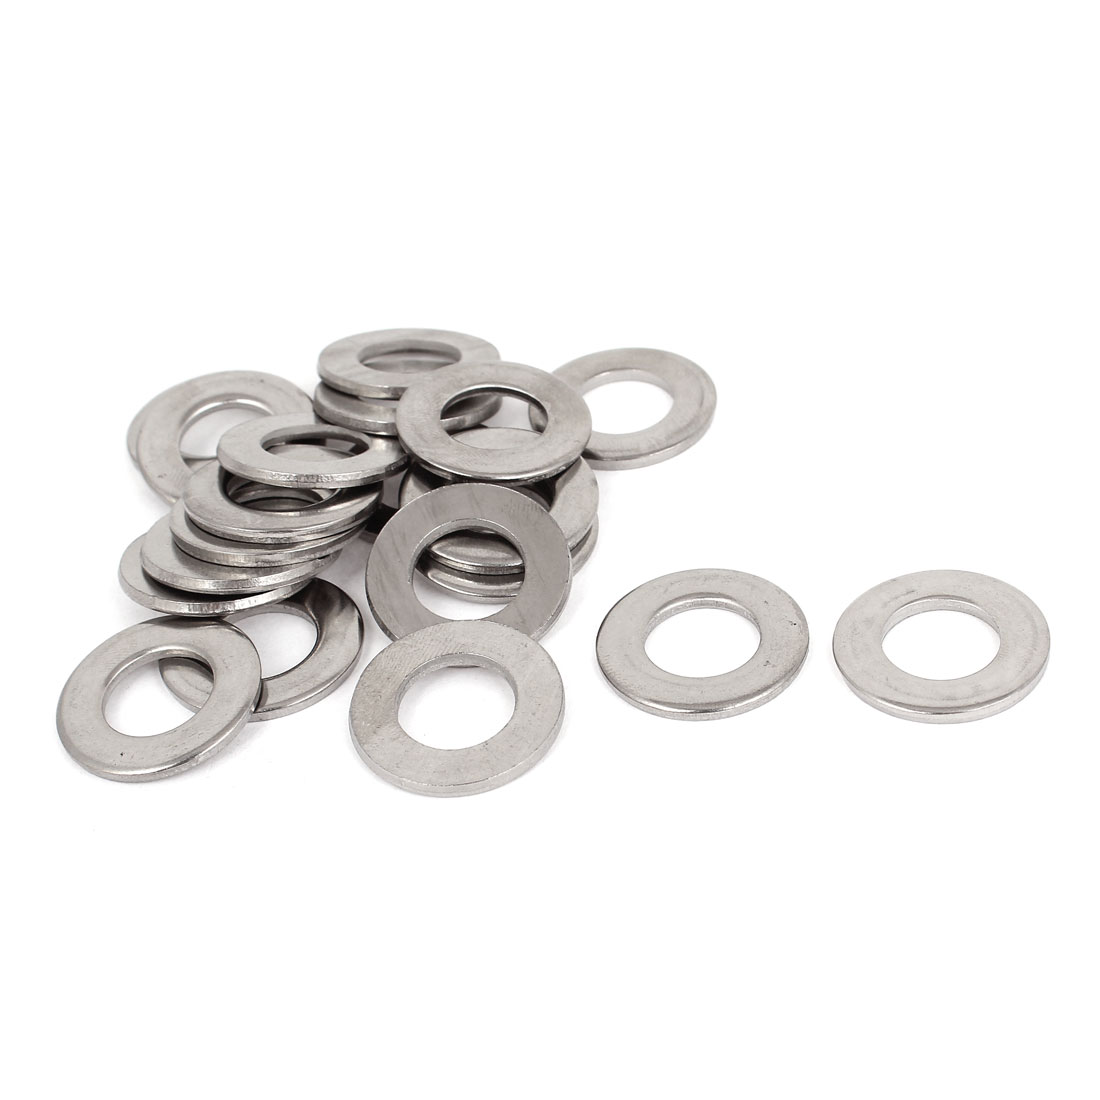 "20pcs Silver Tone 316 Stainless Steel Flat Washer 9/16"" for Screws Bolts"